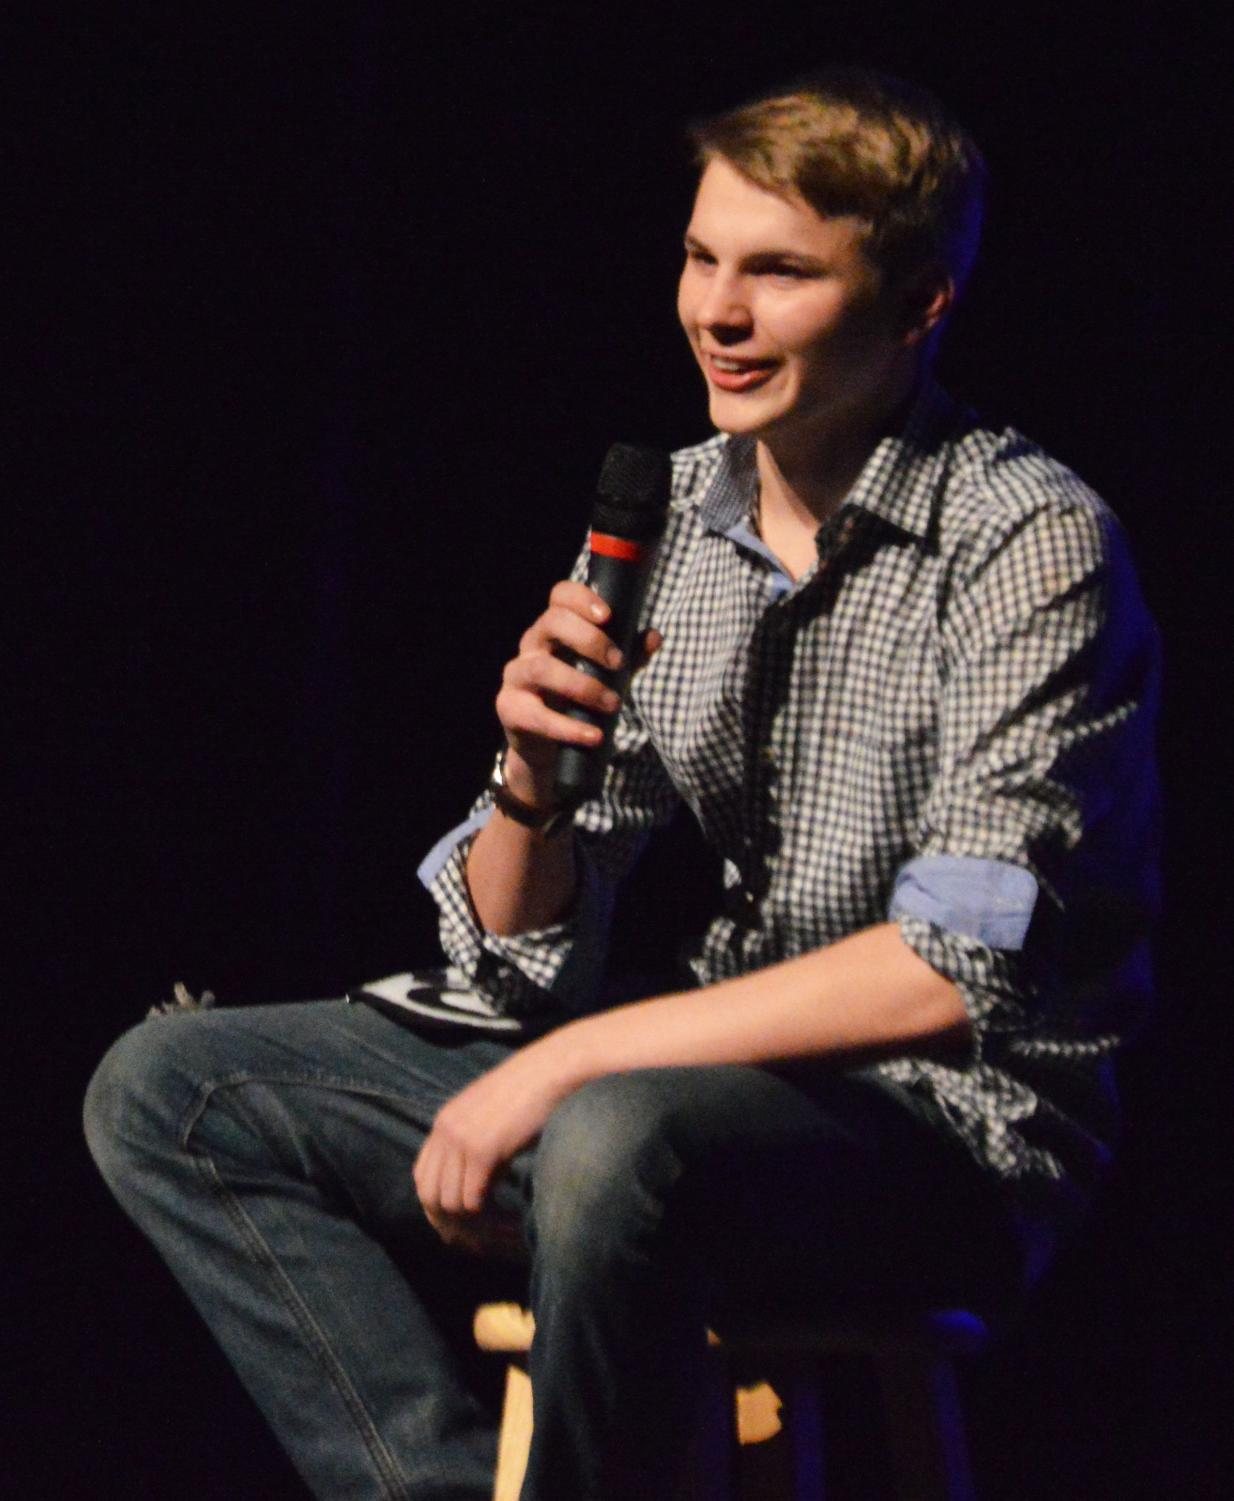 COMEDIAN.+Cameron+Gifford+makes+the+audience+laugh+with+his+comedy+routine.+